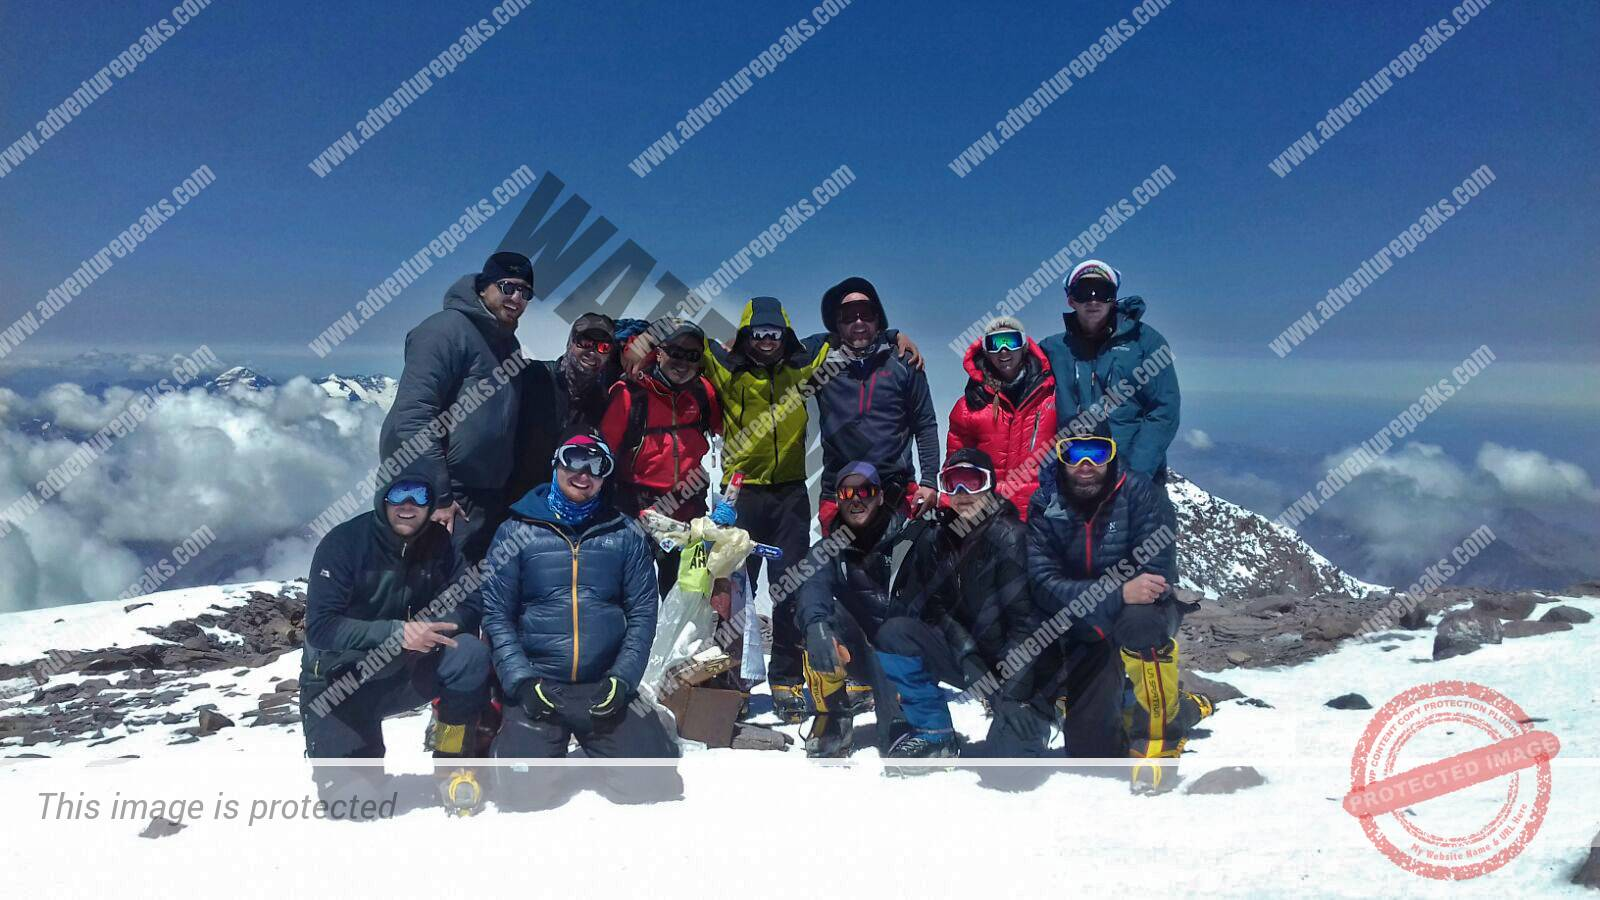 Aconcagua-summit-JW-jan-18